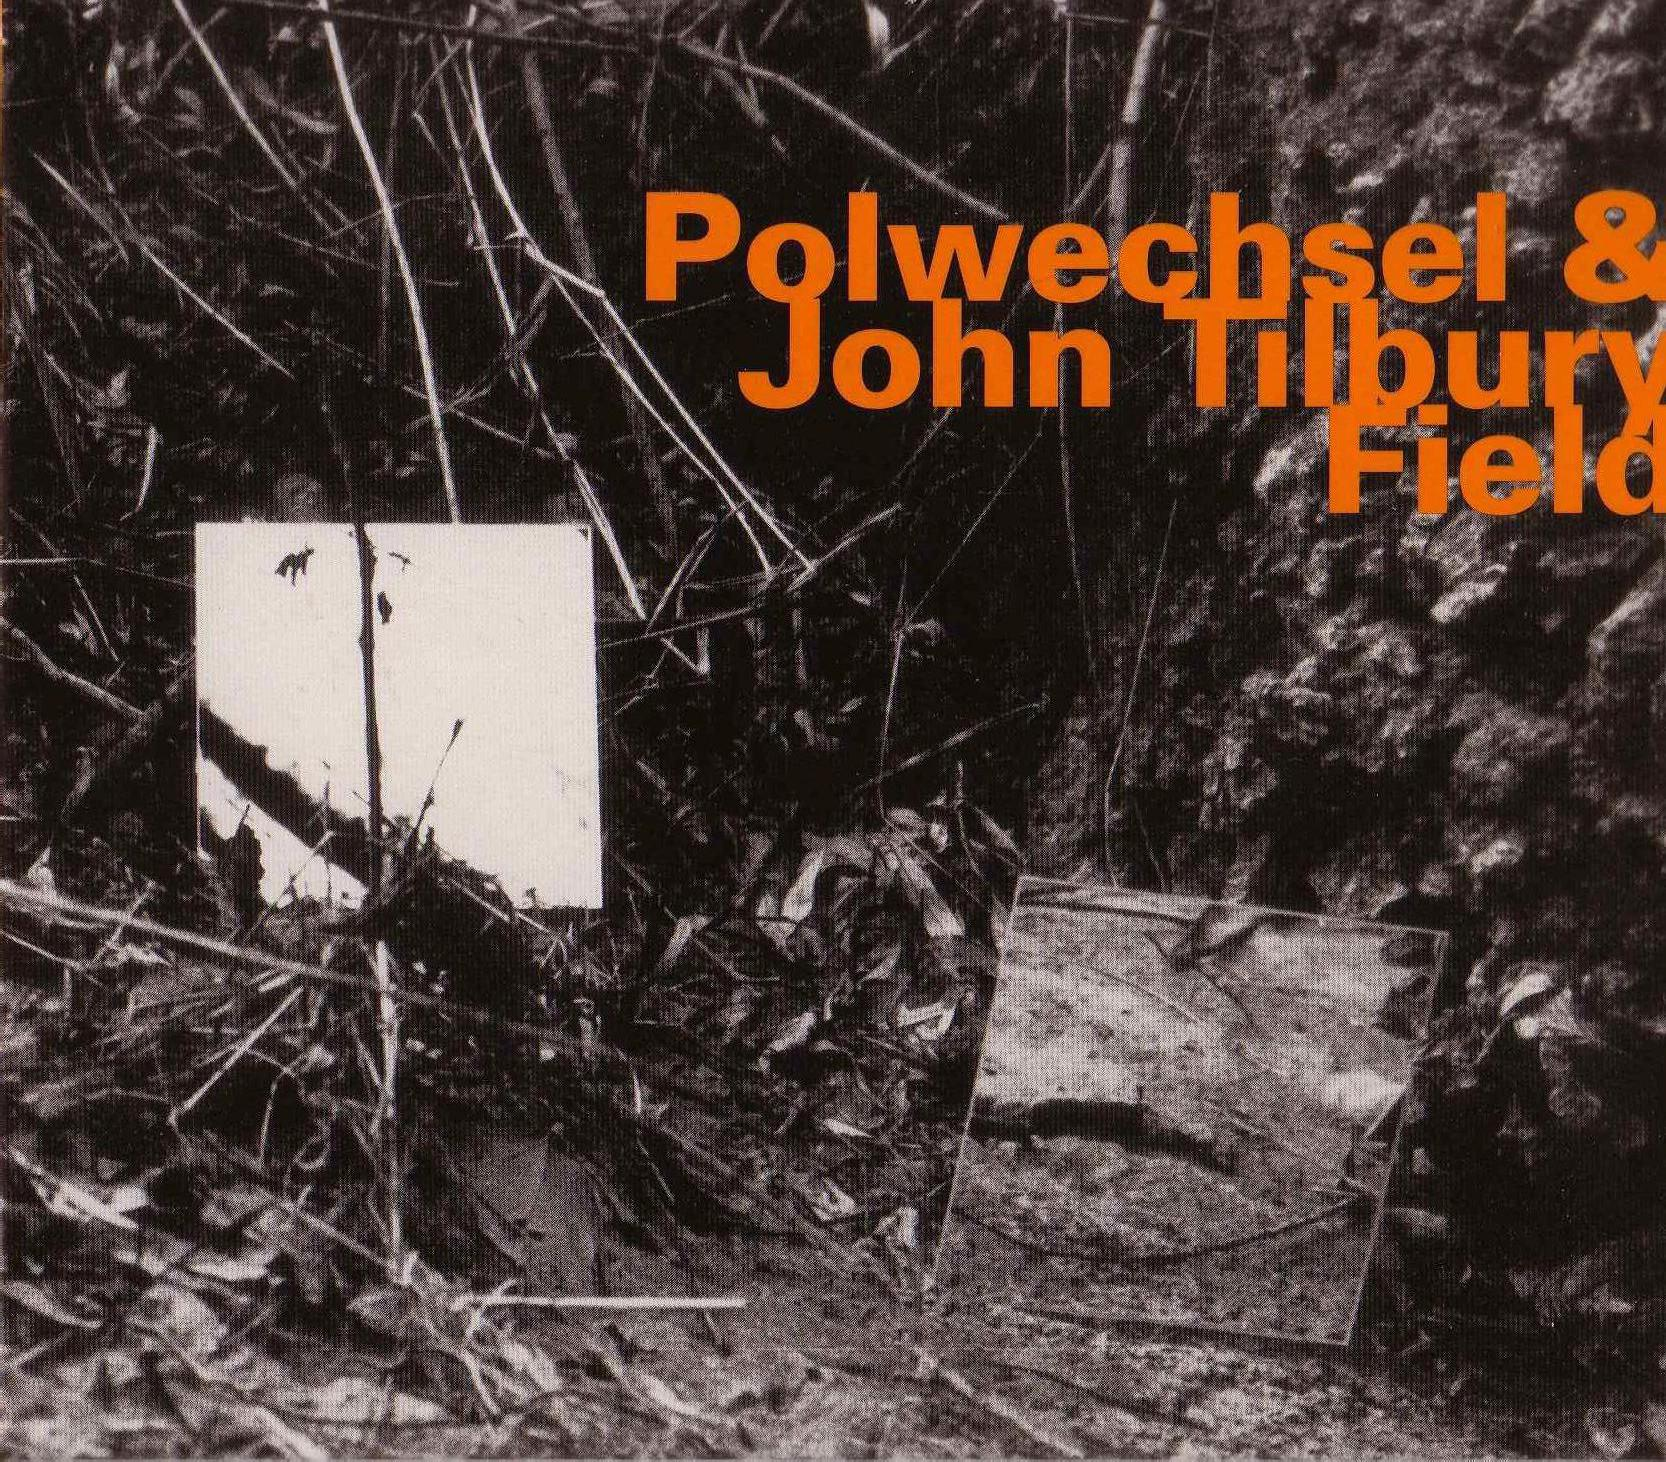 POLWECHSEL - Field - Cover